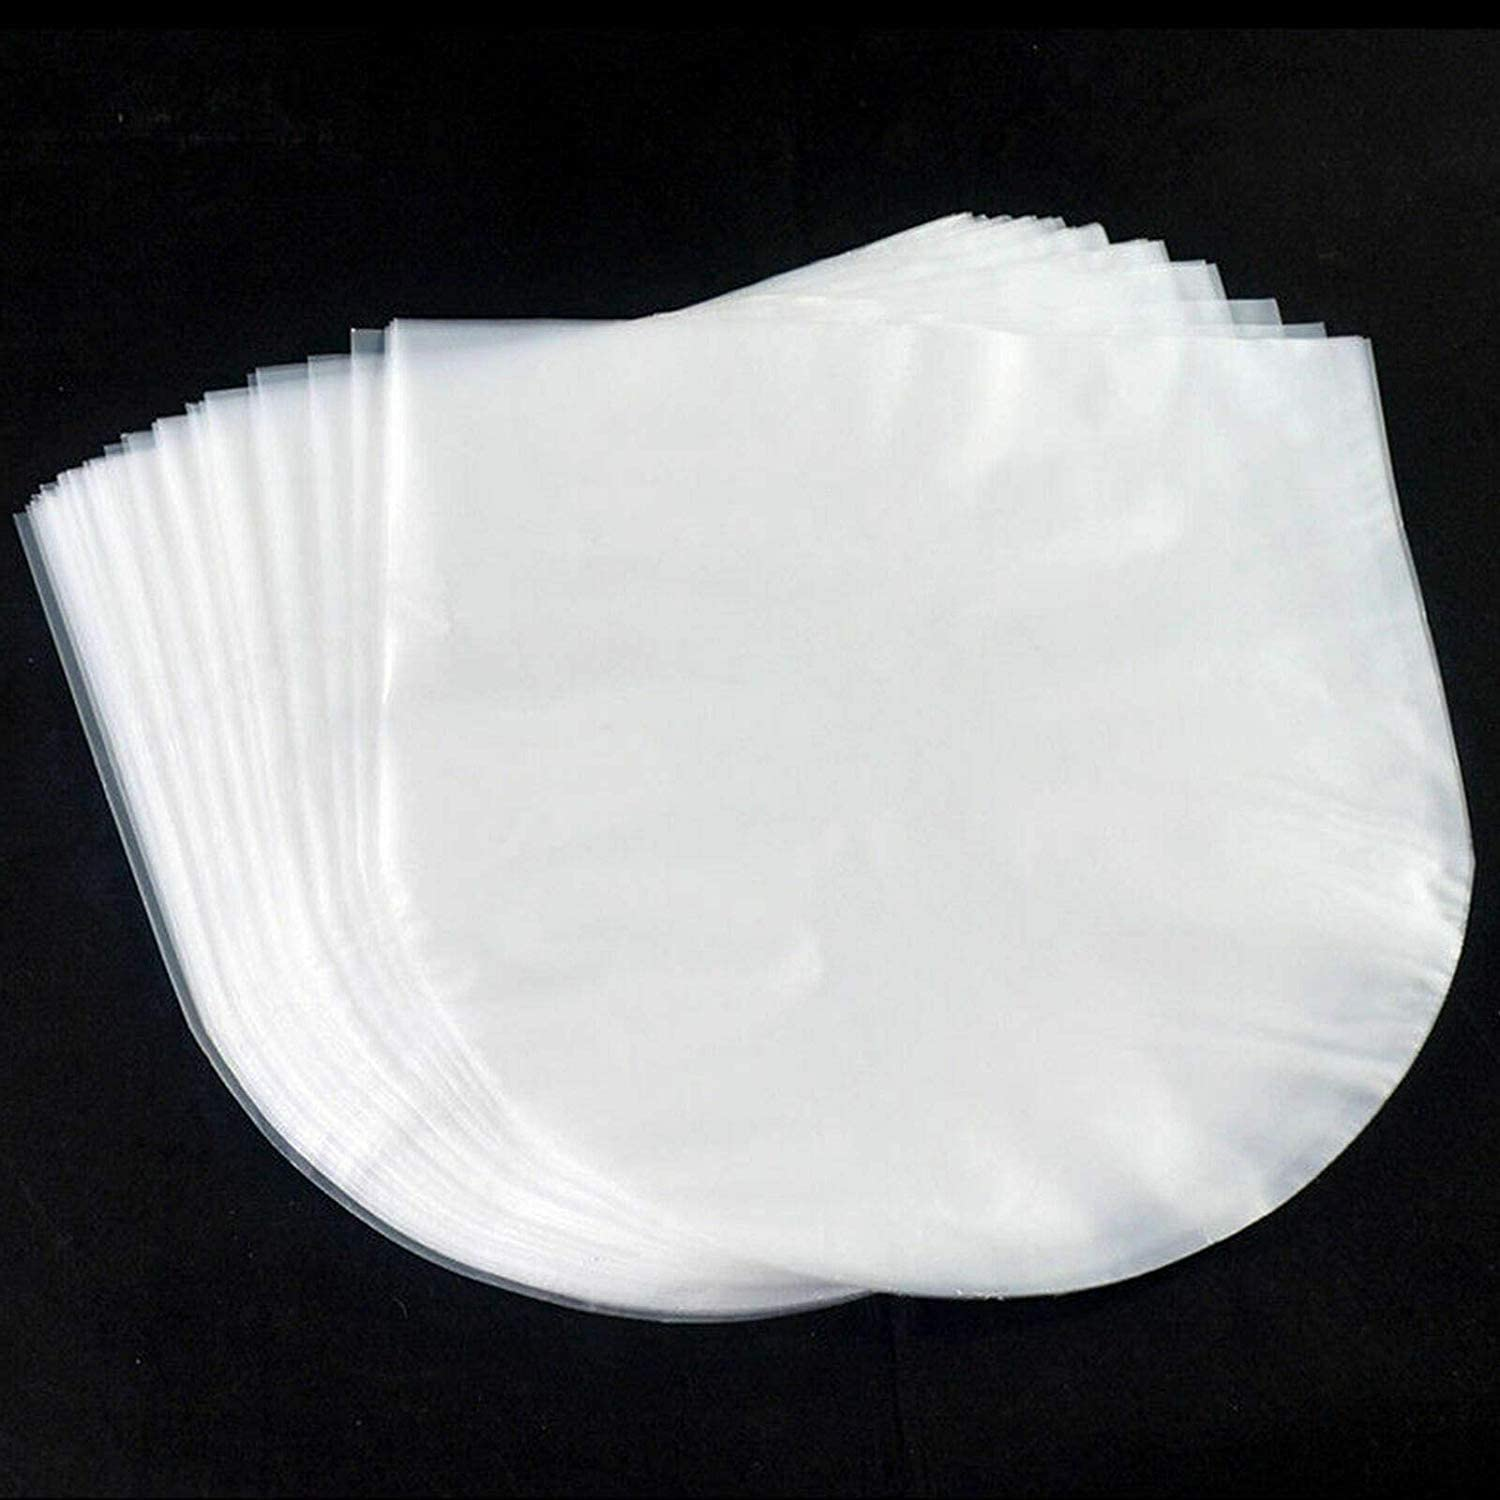 50Pcs LP Inner Sleeves Anti Static Round Bottom 33 RPM 12 Vinyl Record Sleeves Provide Your LP Collection with The Proper Protection